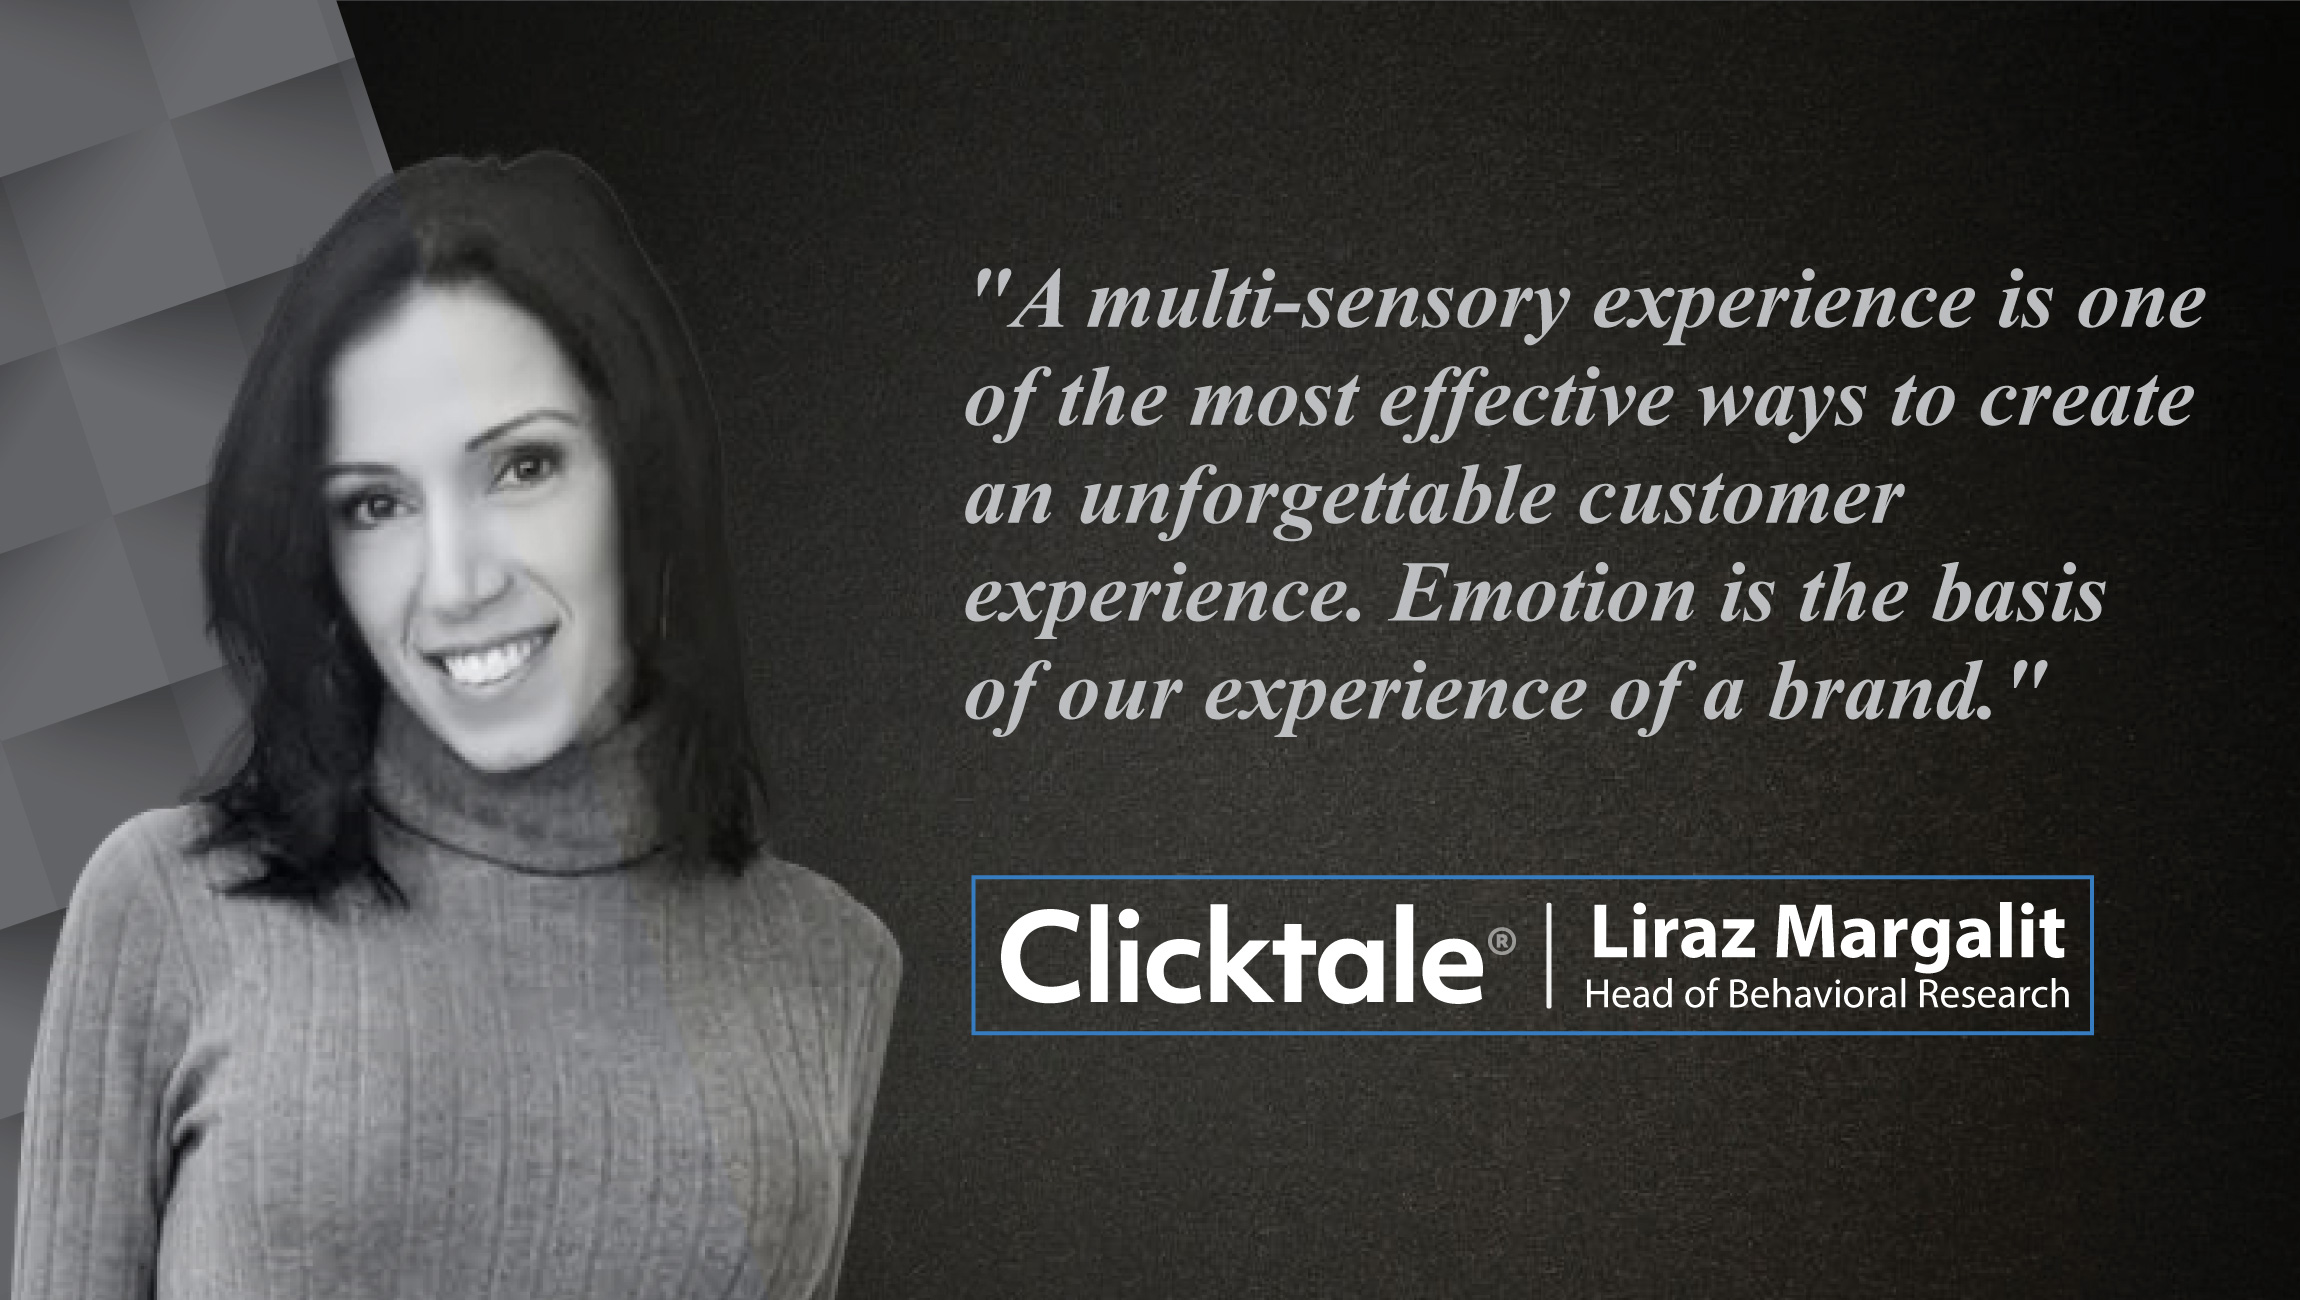 Interview with Dr. Liraz Margalit, Head of Behavioral Research at Clicktale